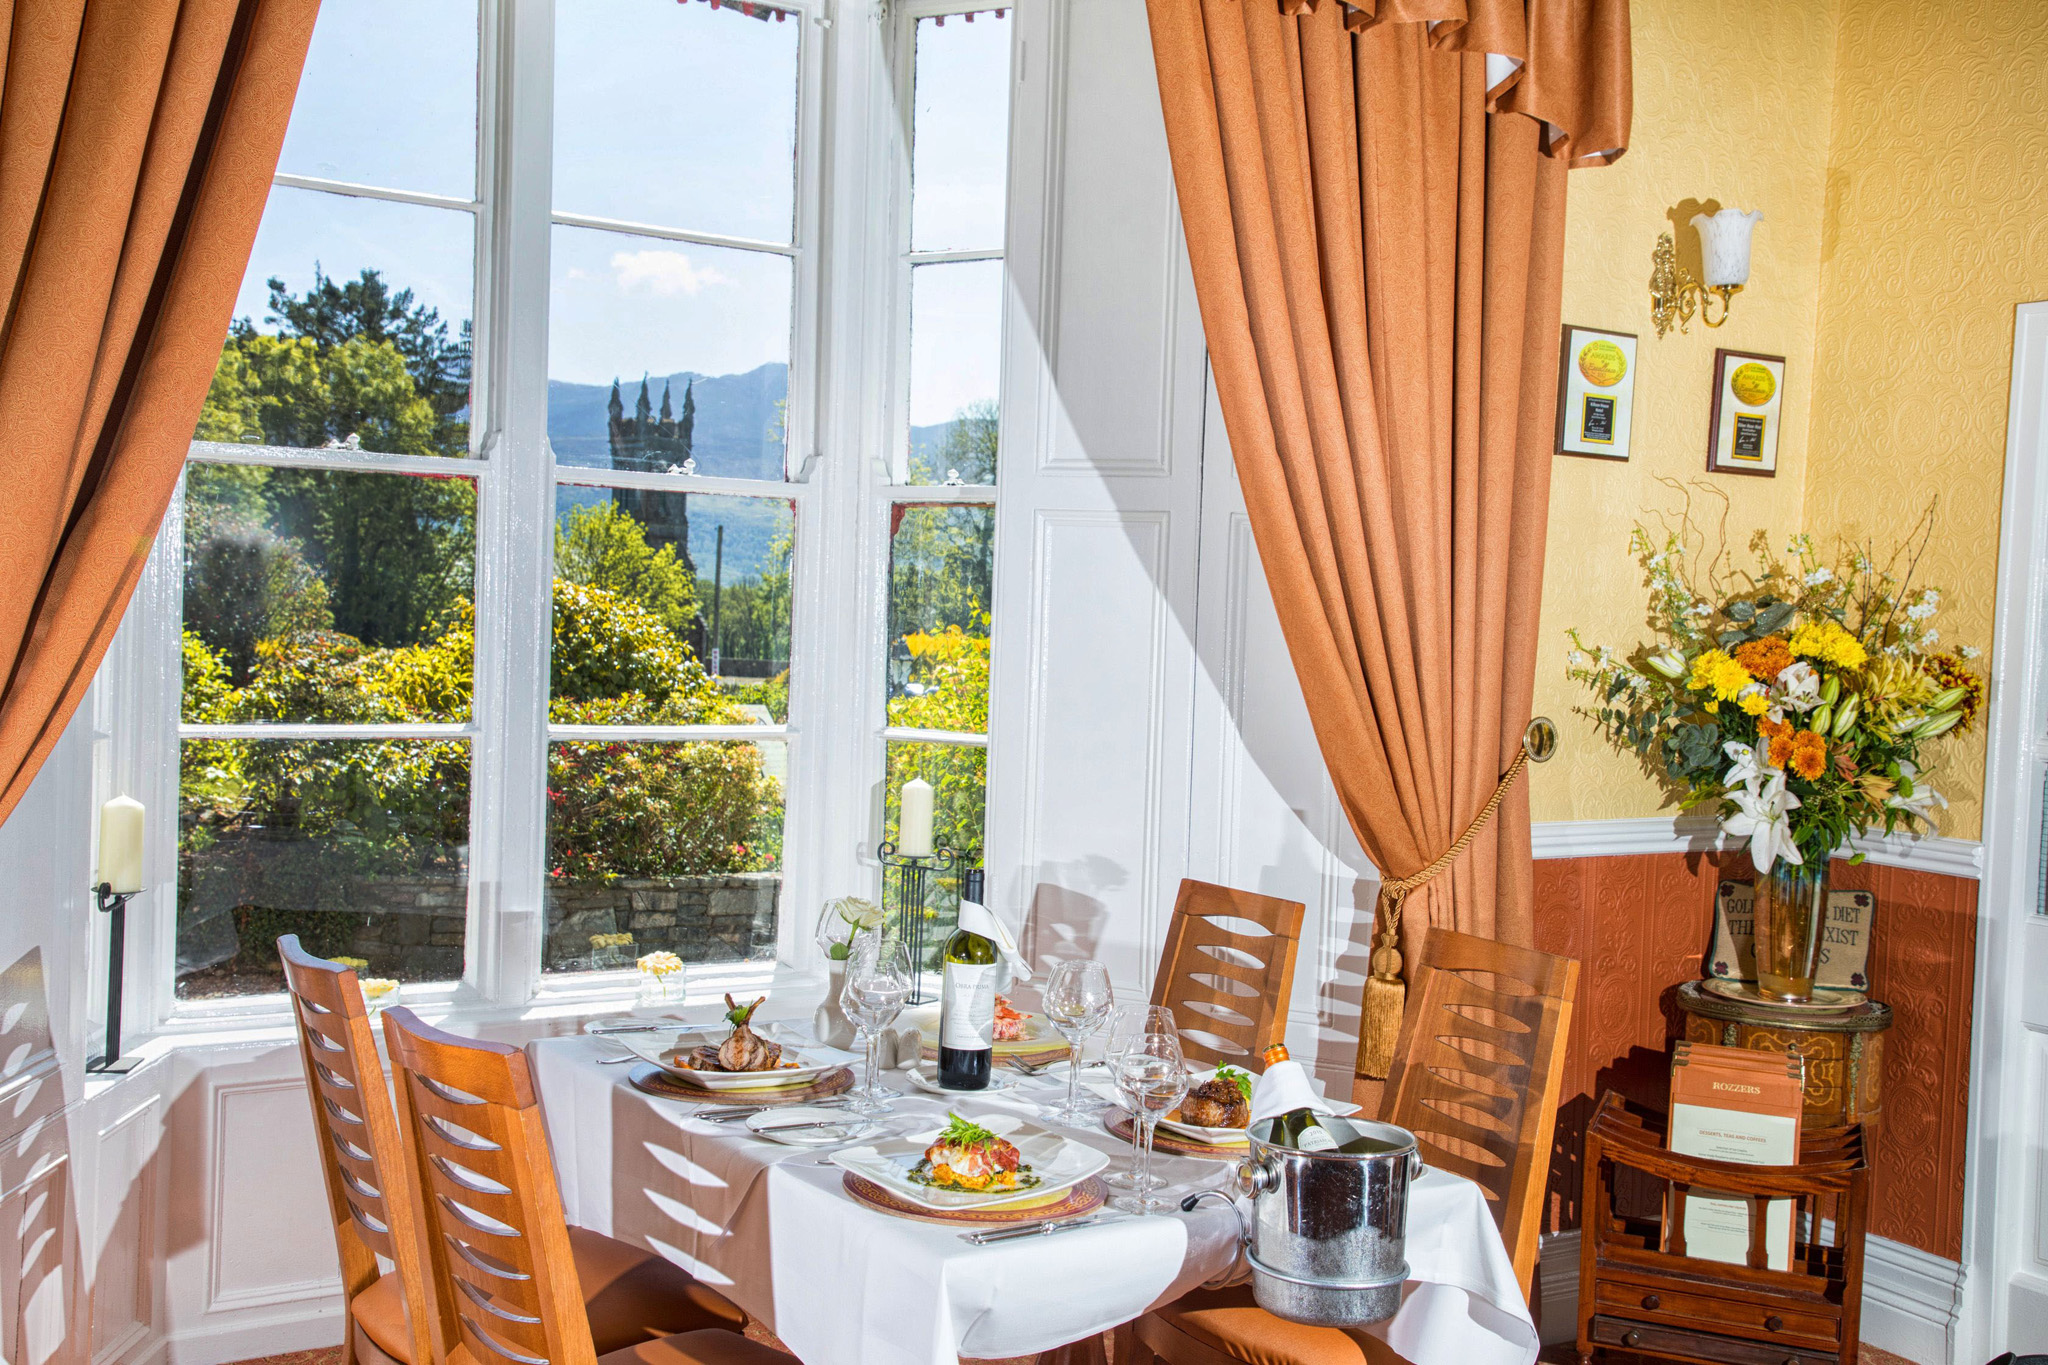 Killeen House Hotel | Aghadoe , Lakes of Killarney, Co Kerry | Photos 28